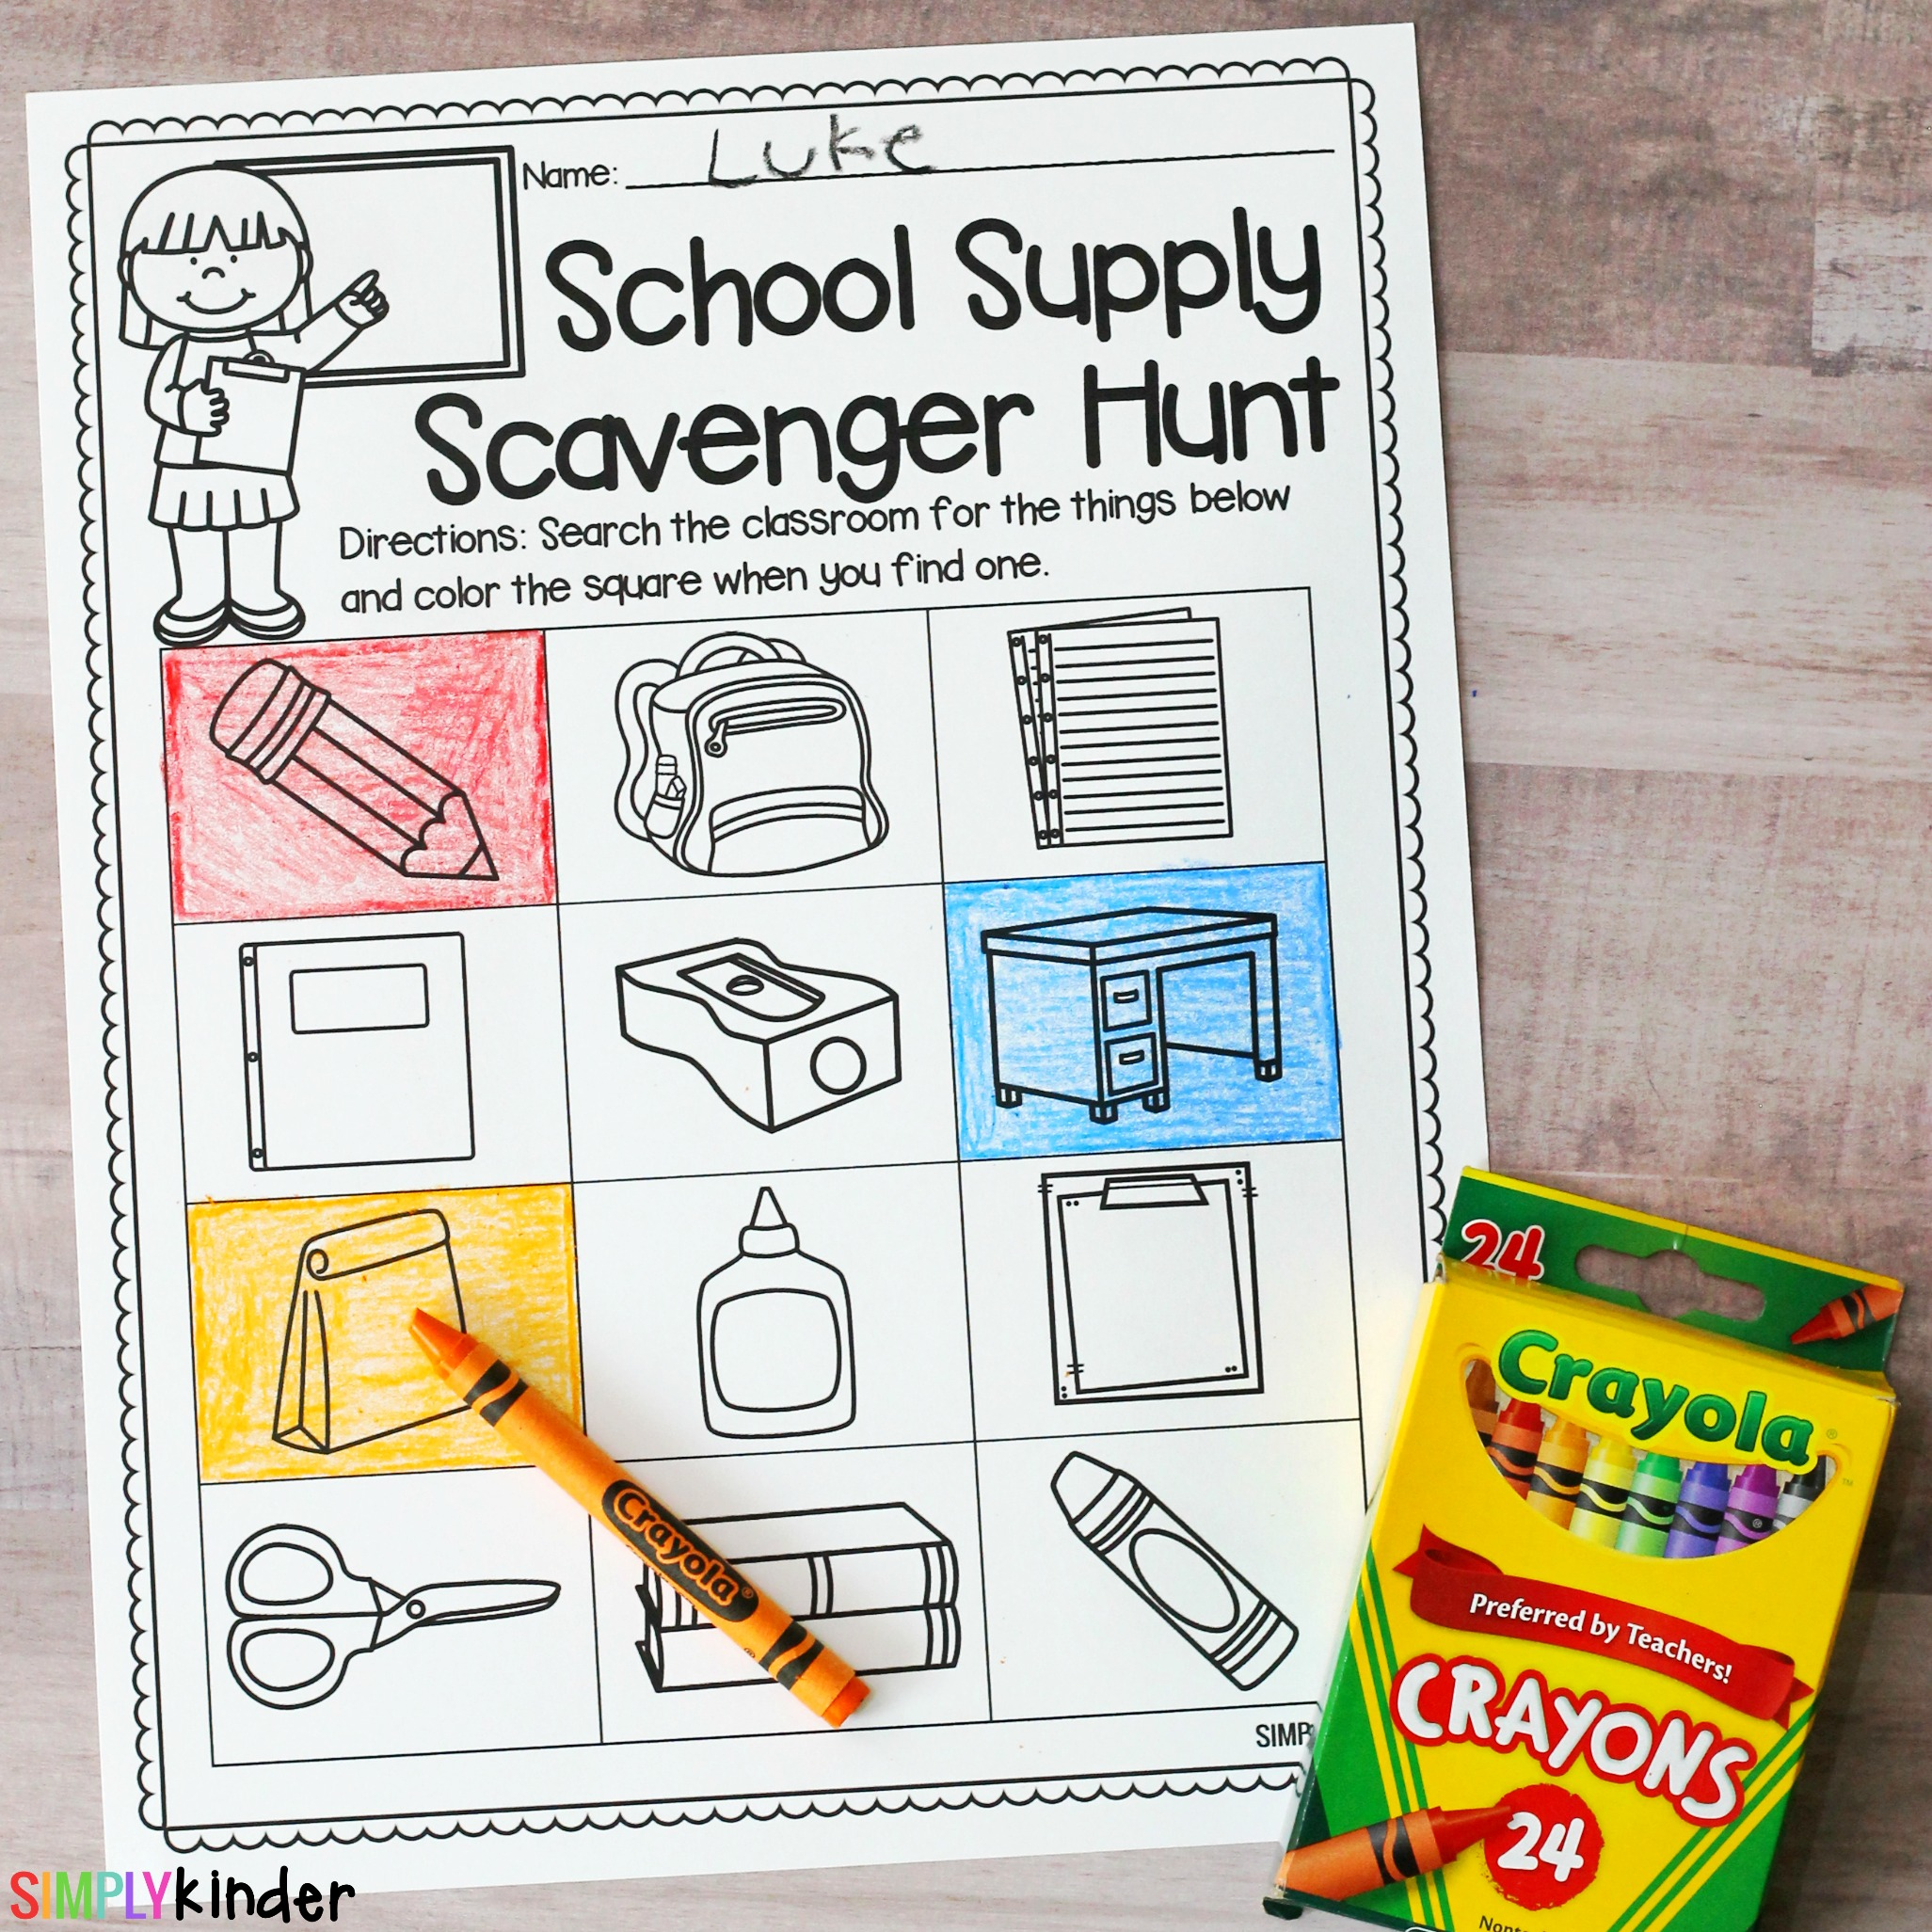 School Supply Scavenger Hunt